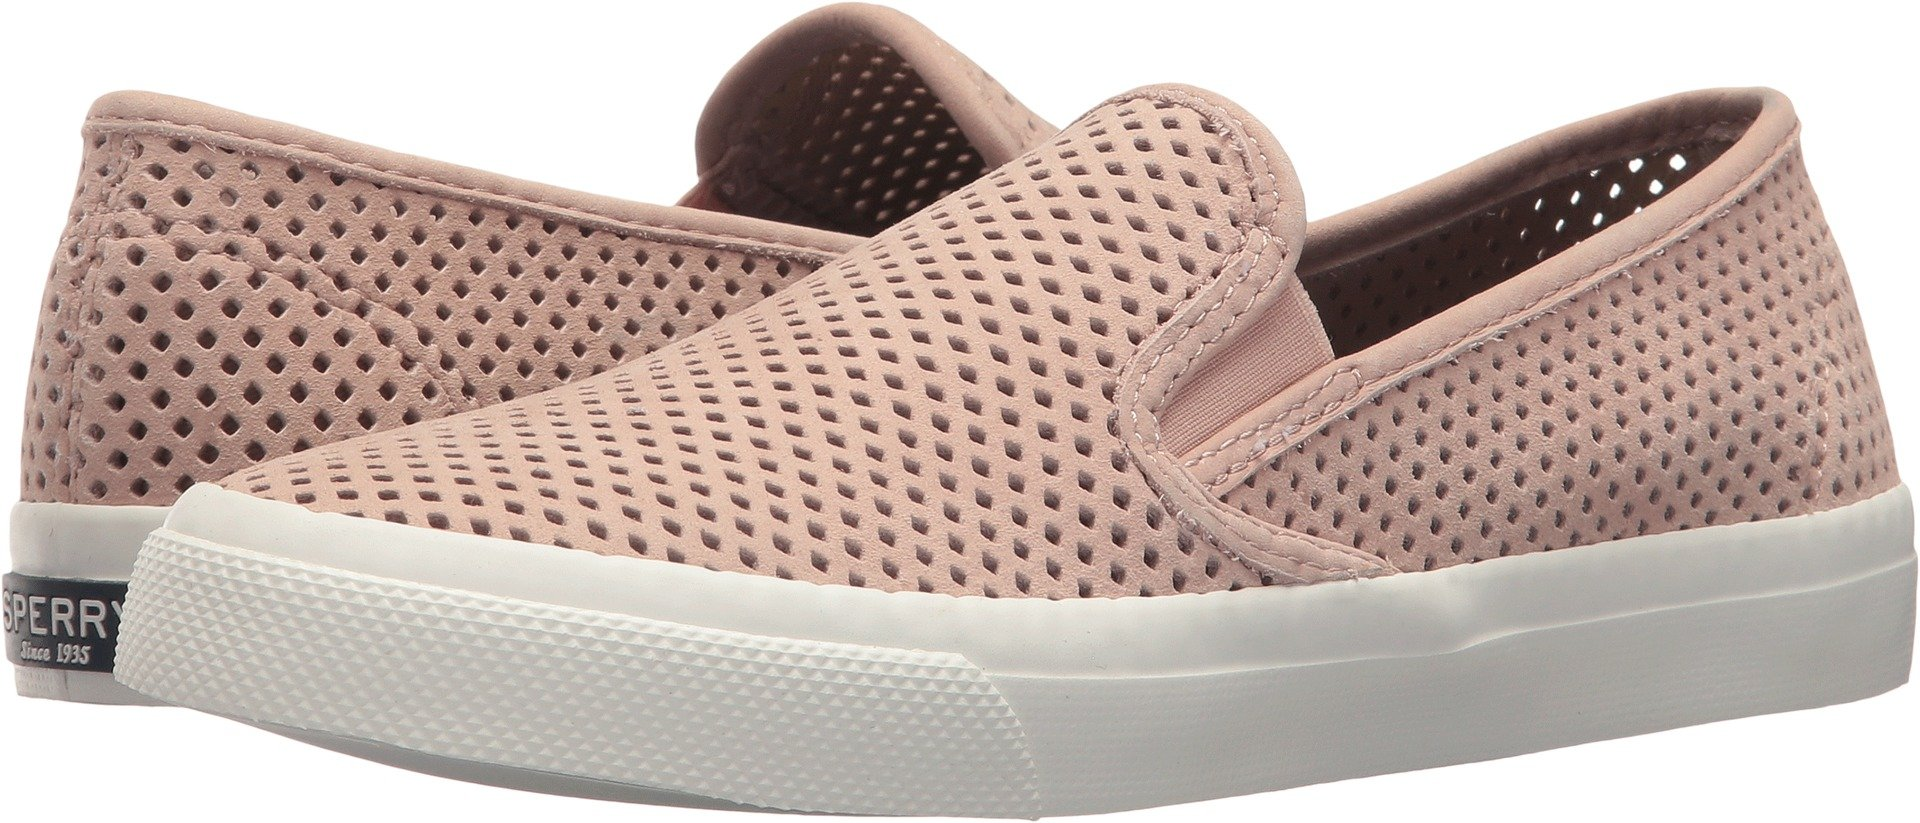 0ebfab58700a Galleon - Sperry Womens Seaside Leather Low Top Slip On Fashion Sneakers,  Blush, Size 7.0